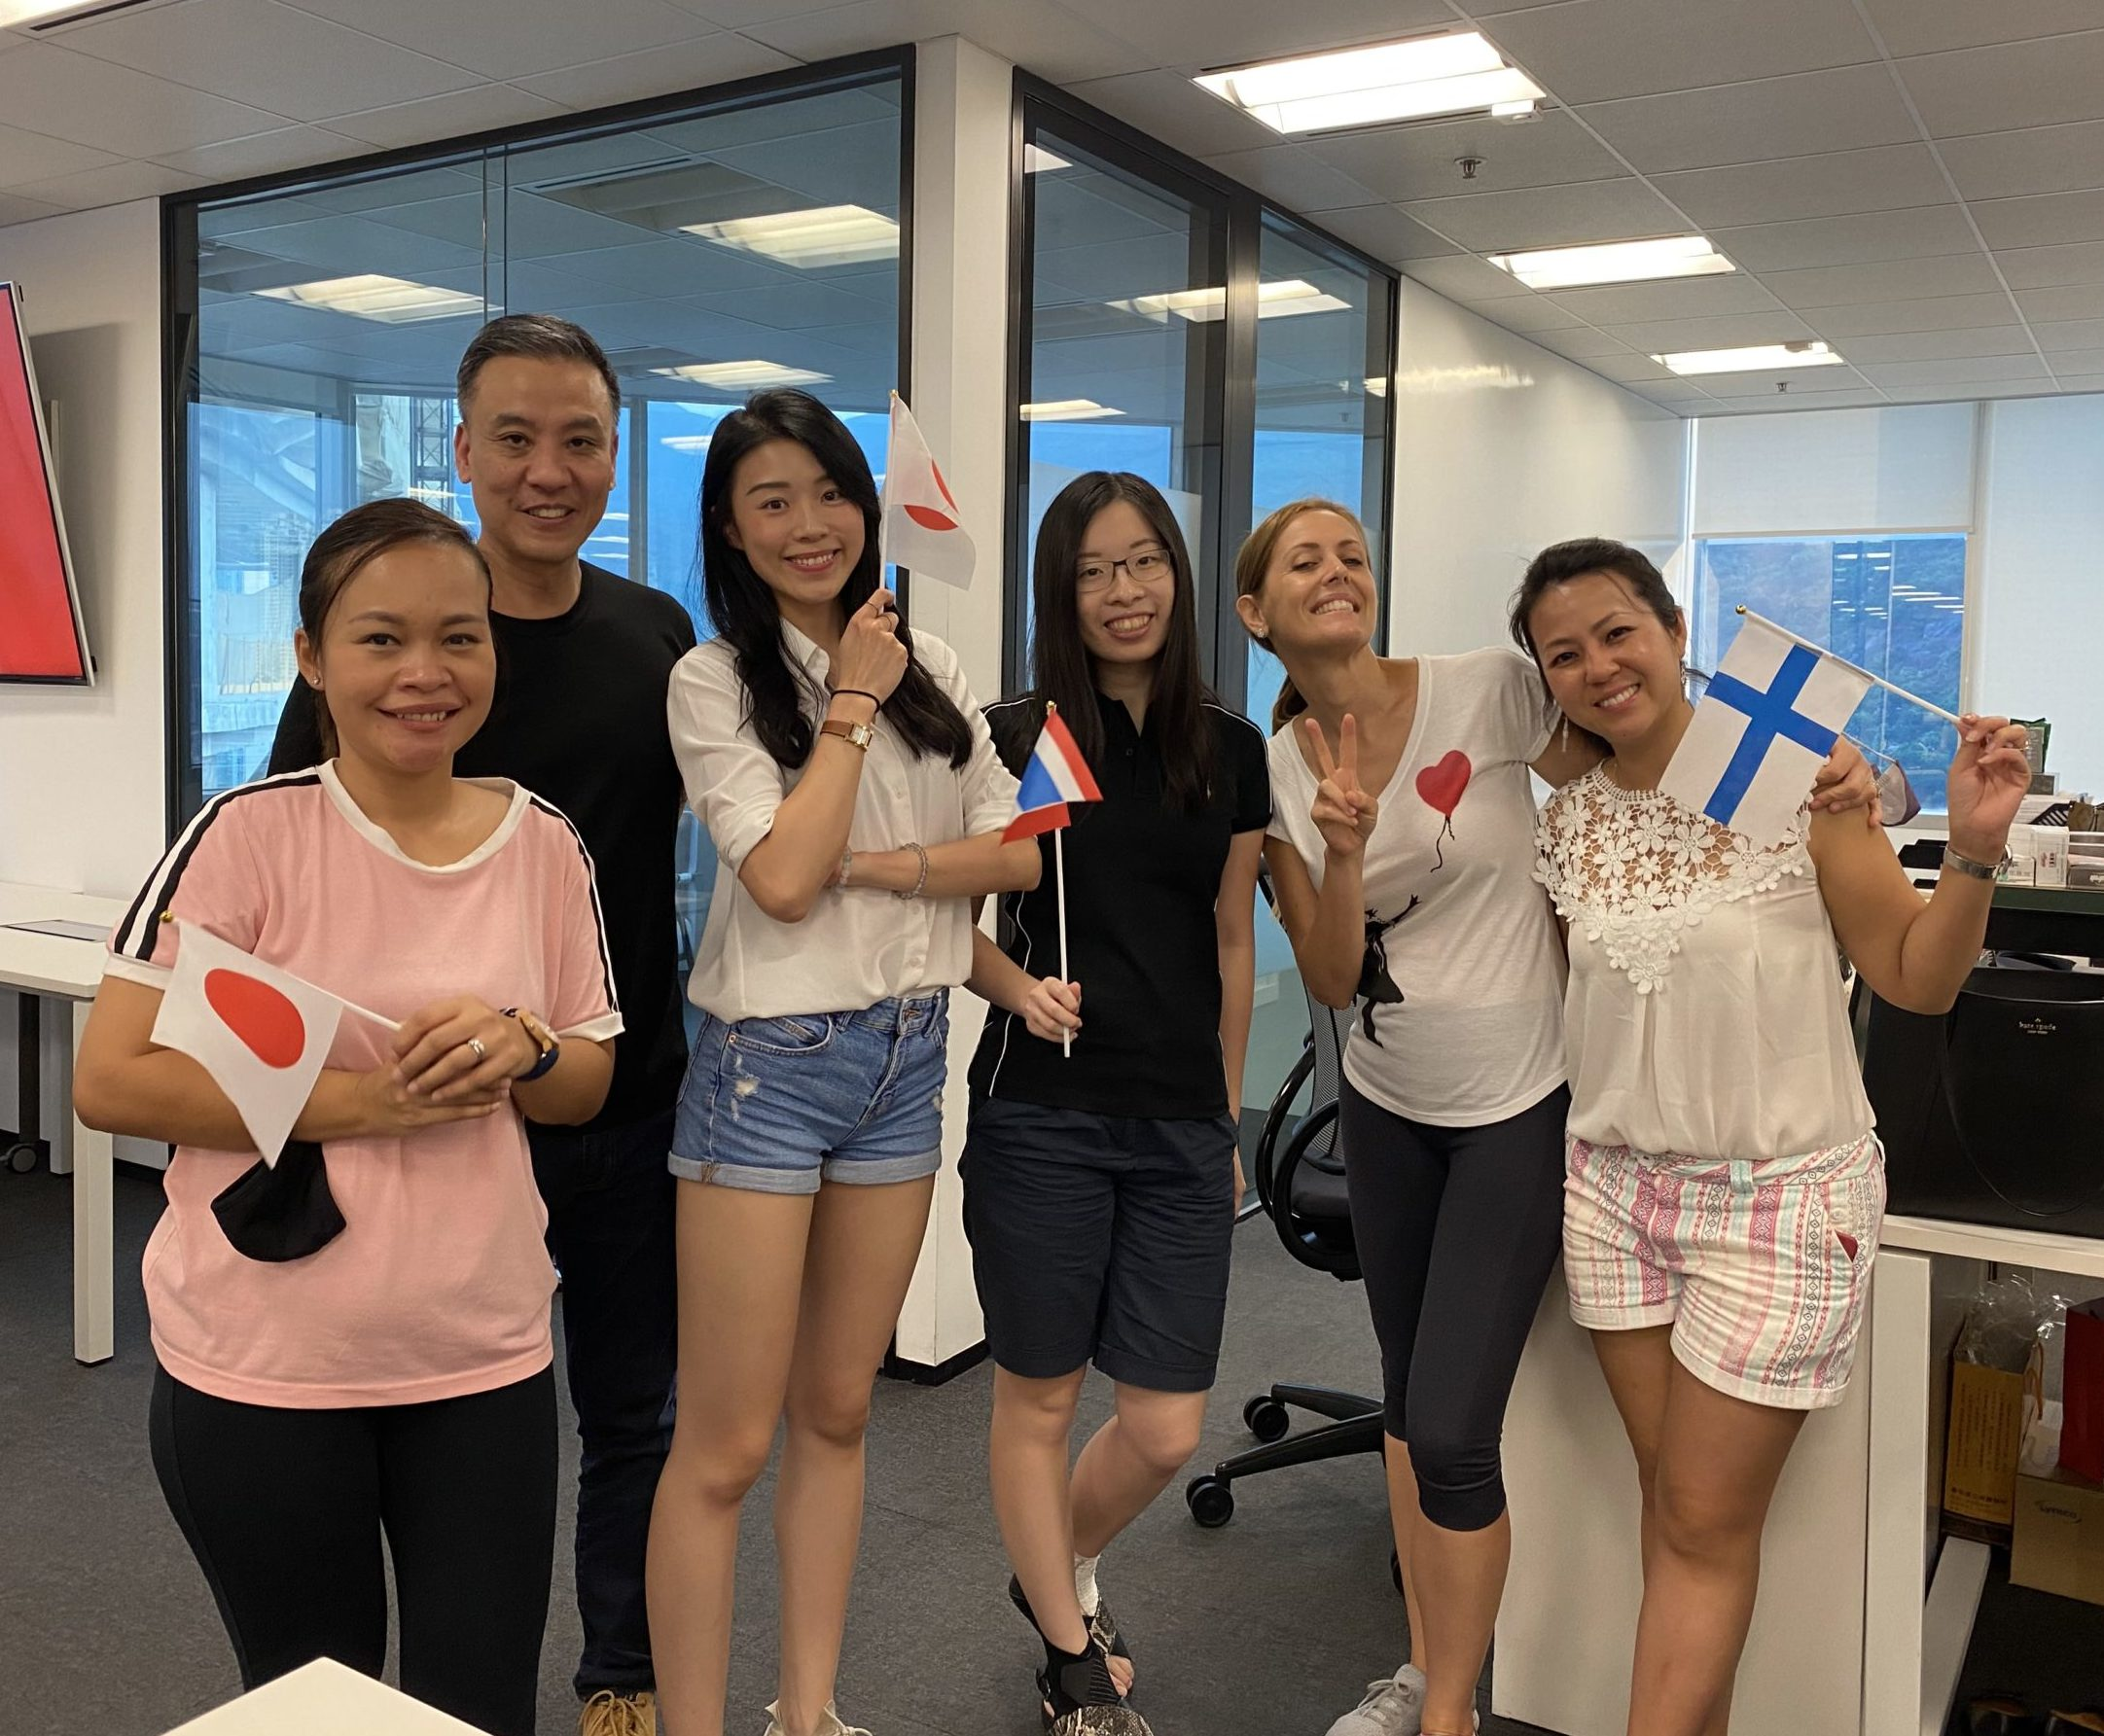 A group of five women and one man taking part in the gravitonian games pose for a photo in an office holding flags of different Olympic countries